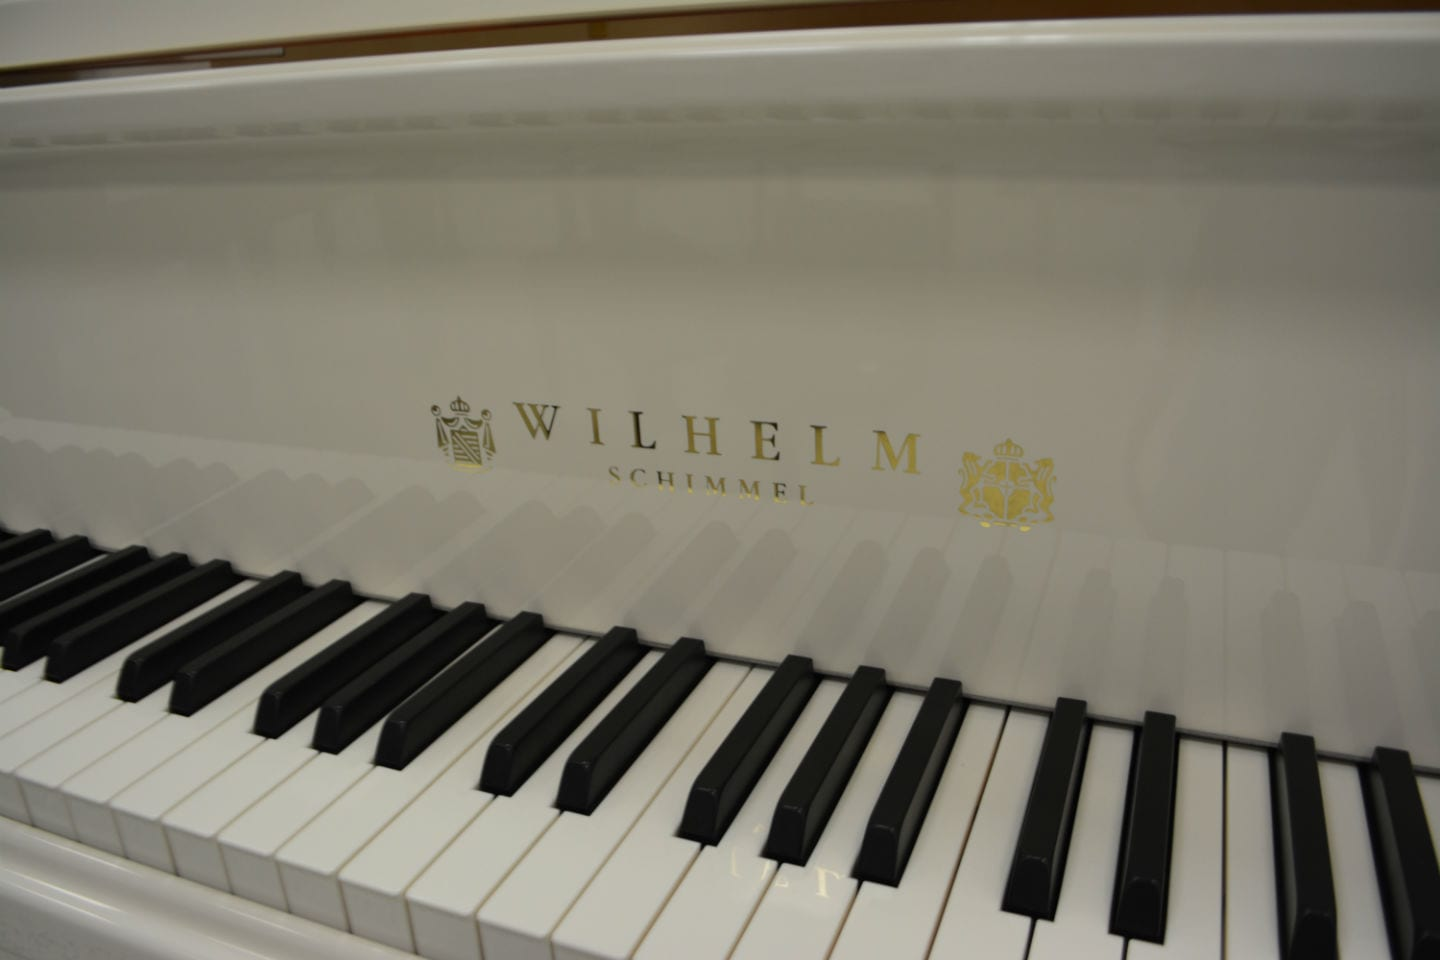 Schimmel Wilhelm 180 Grand Piano White Polish